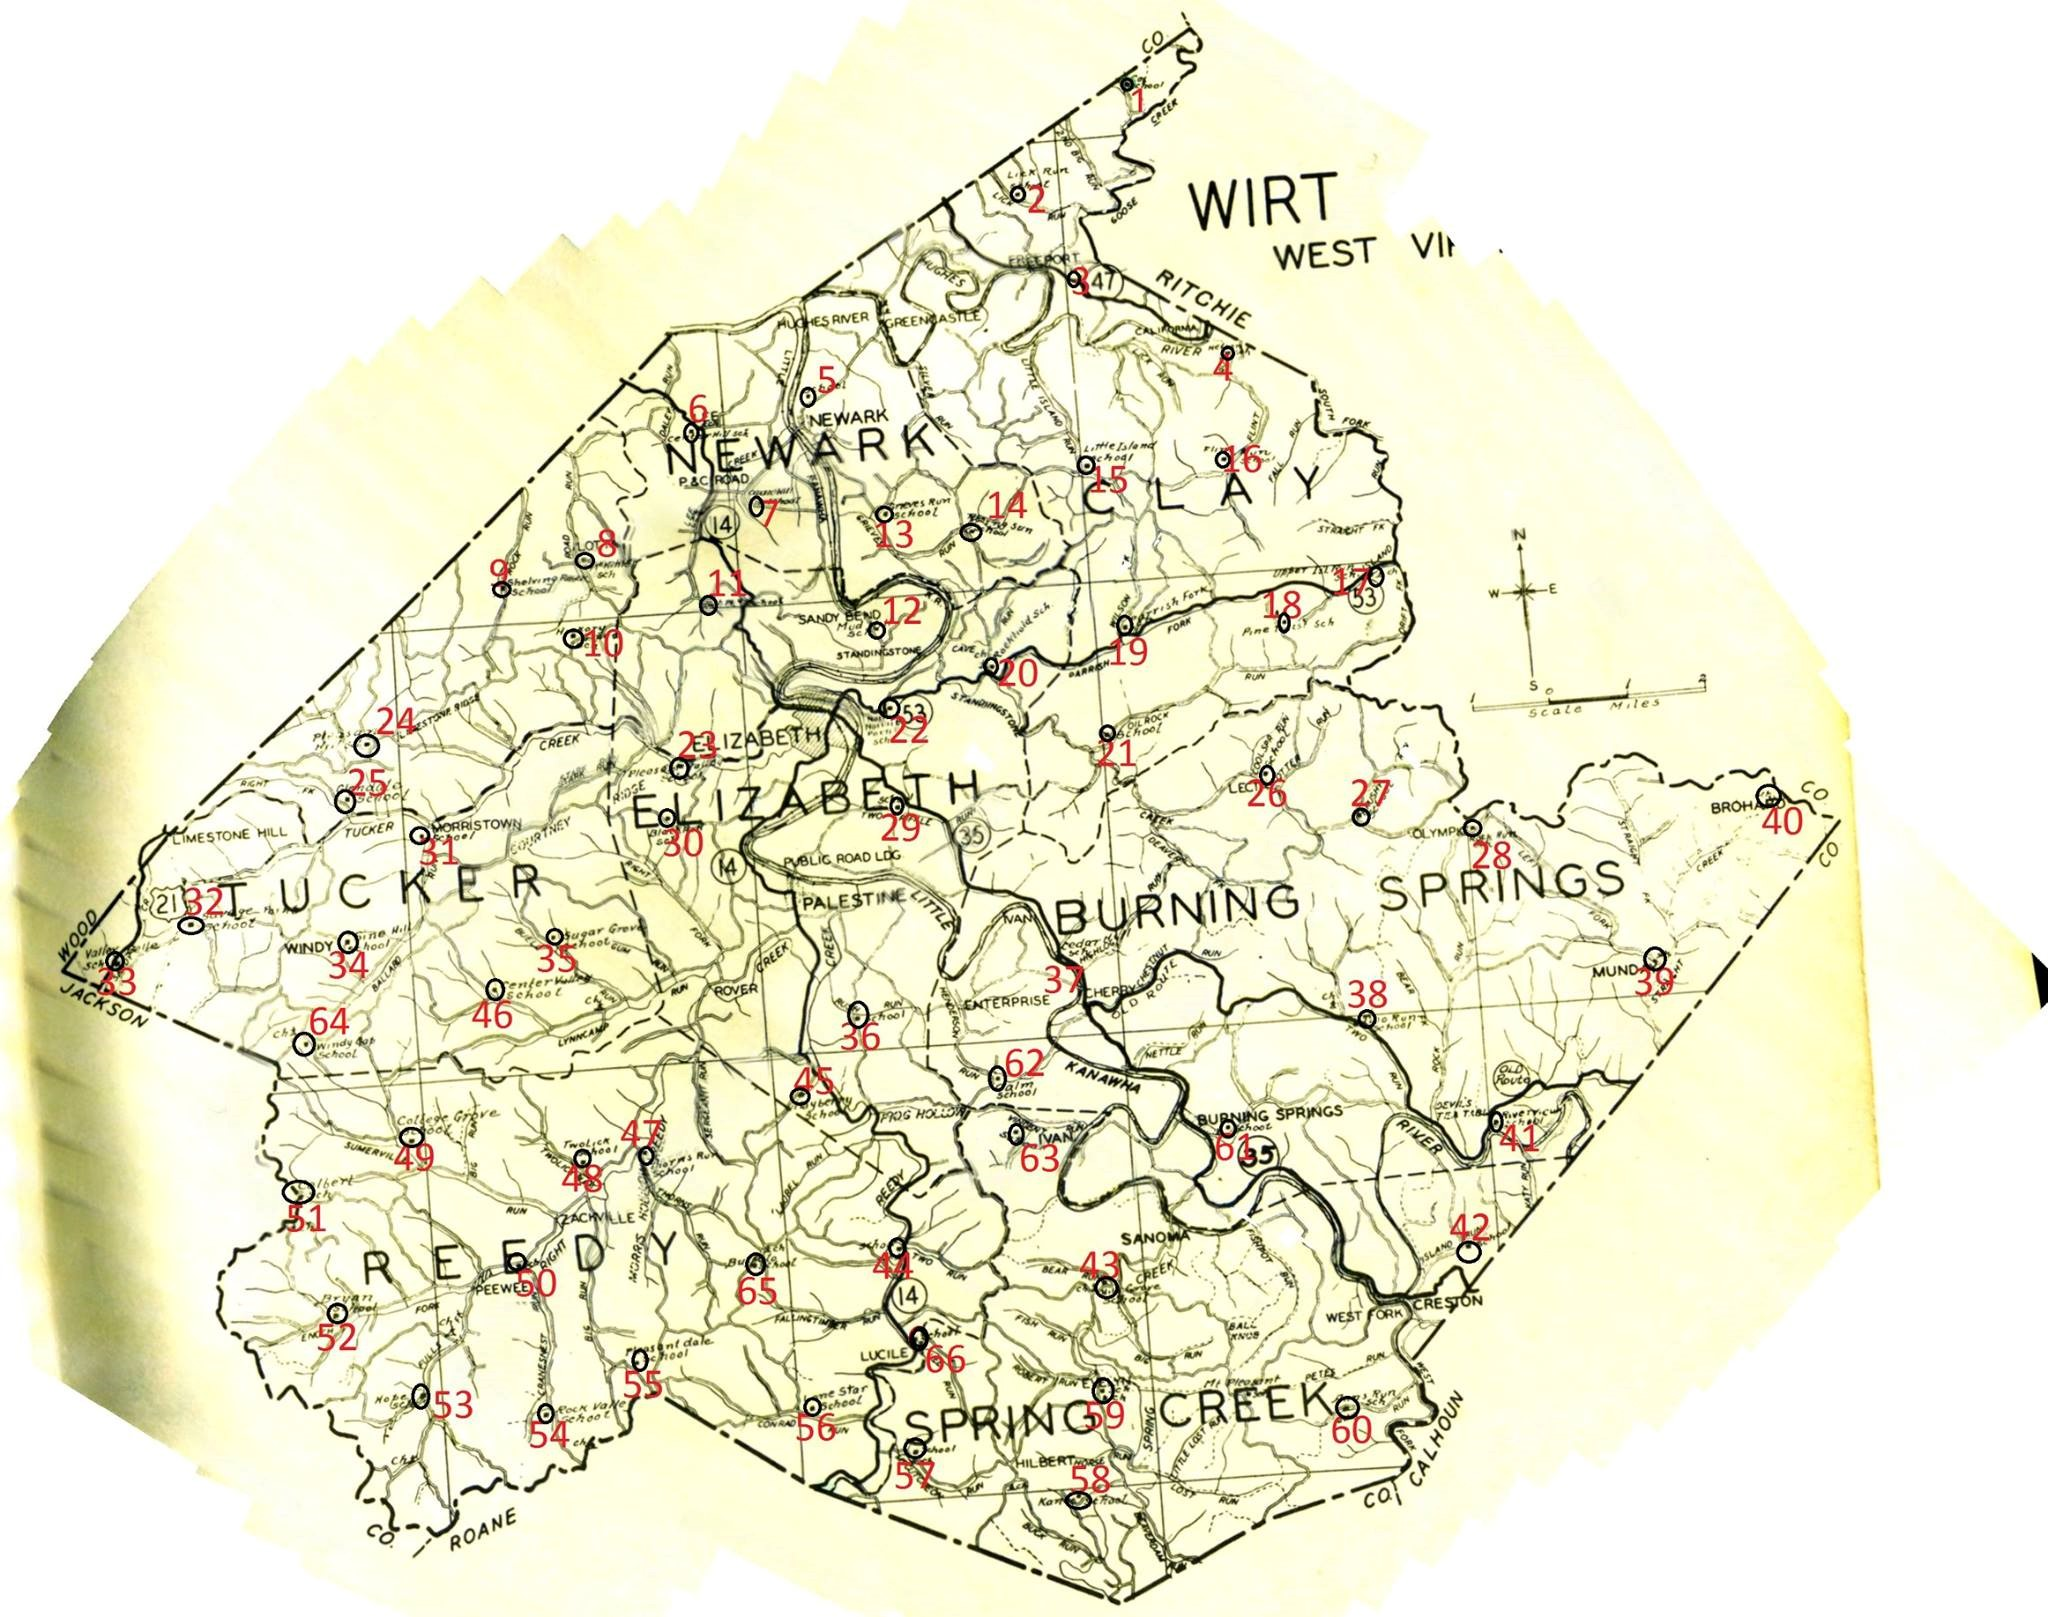 Map of Wirt County